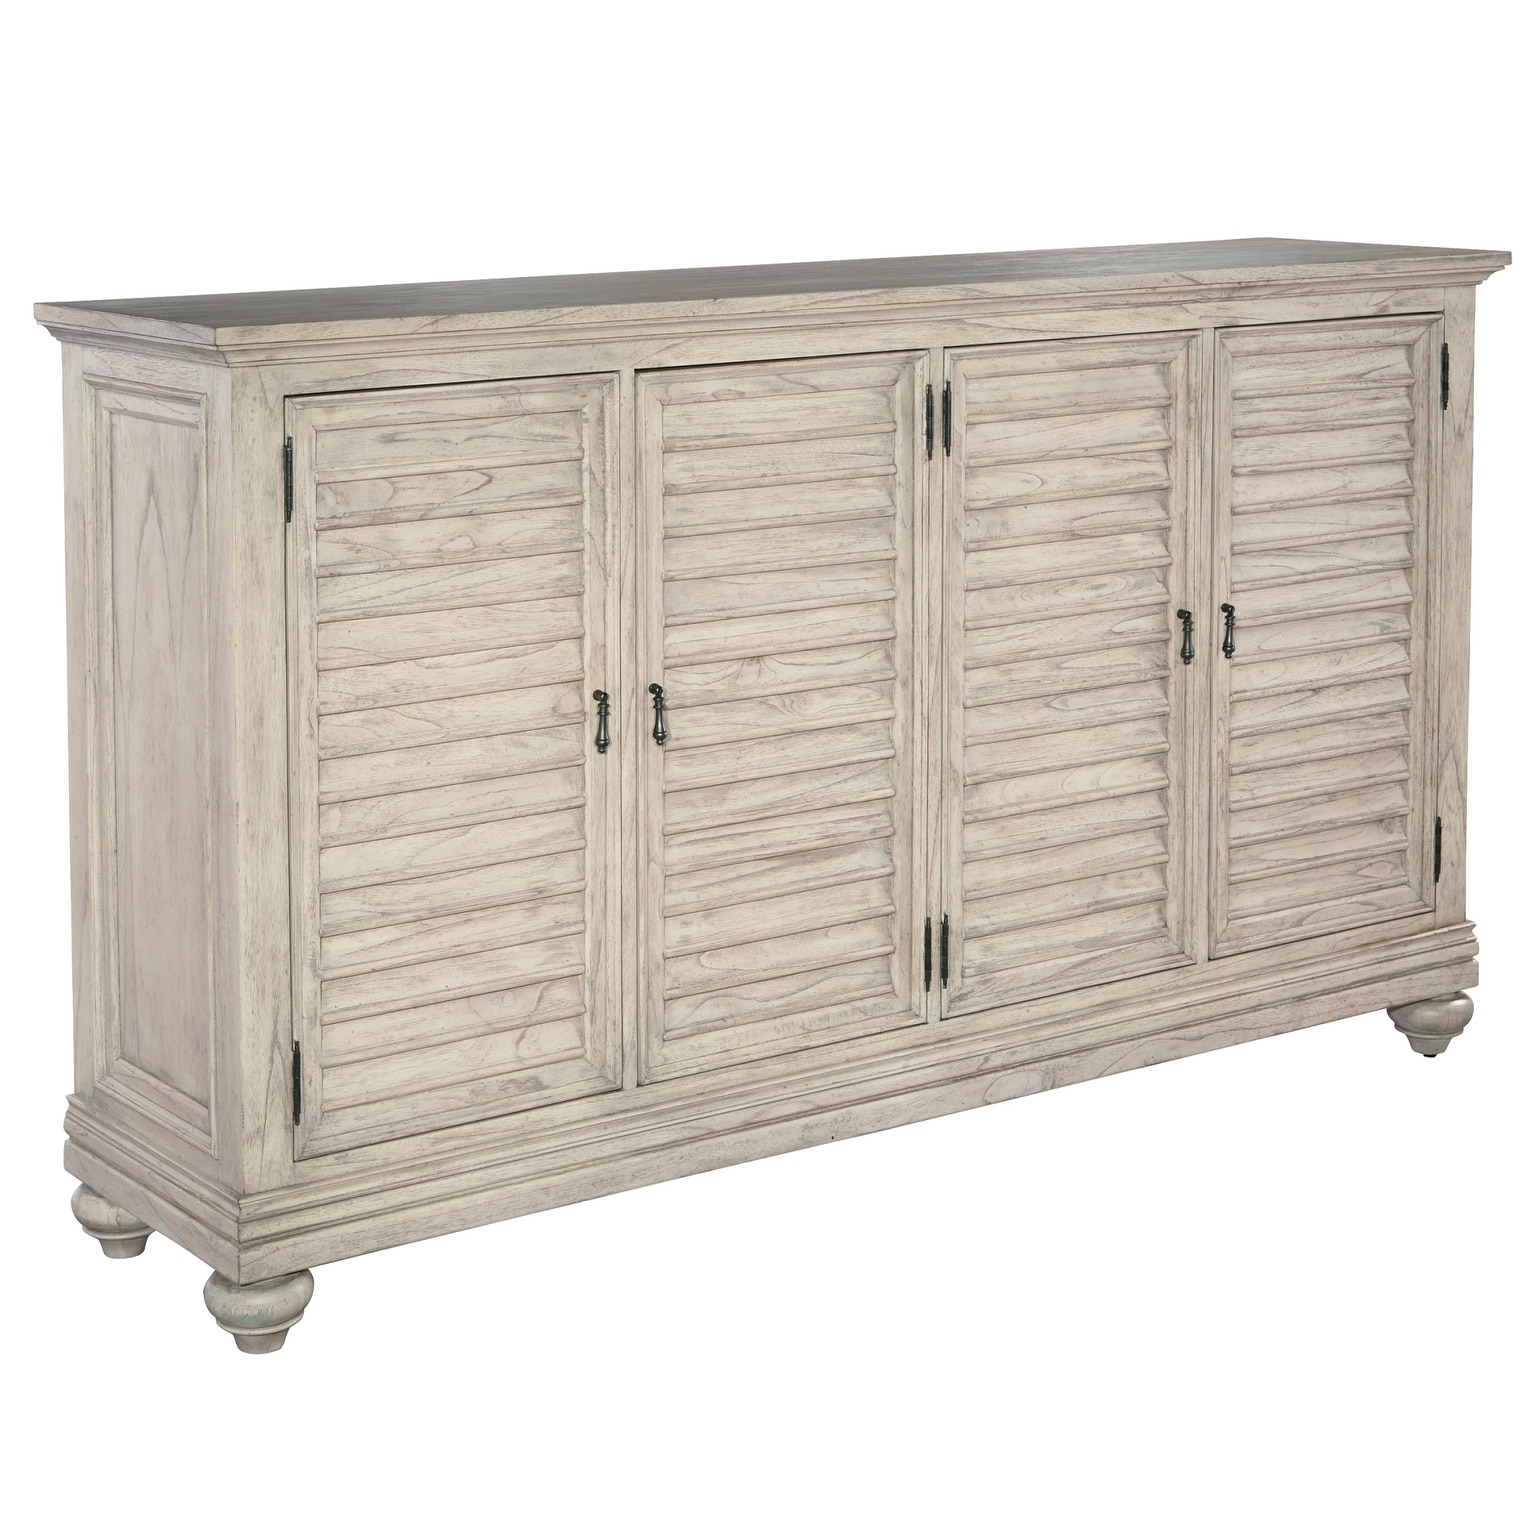 Hekman Furniture Antique White Wood